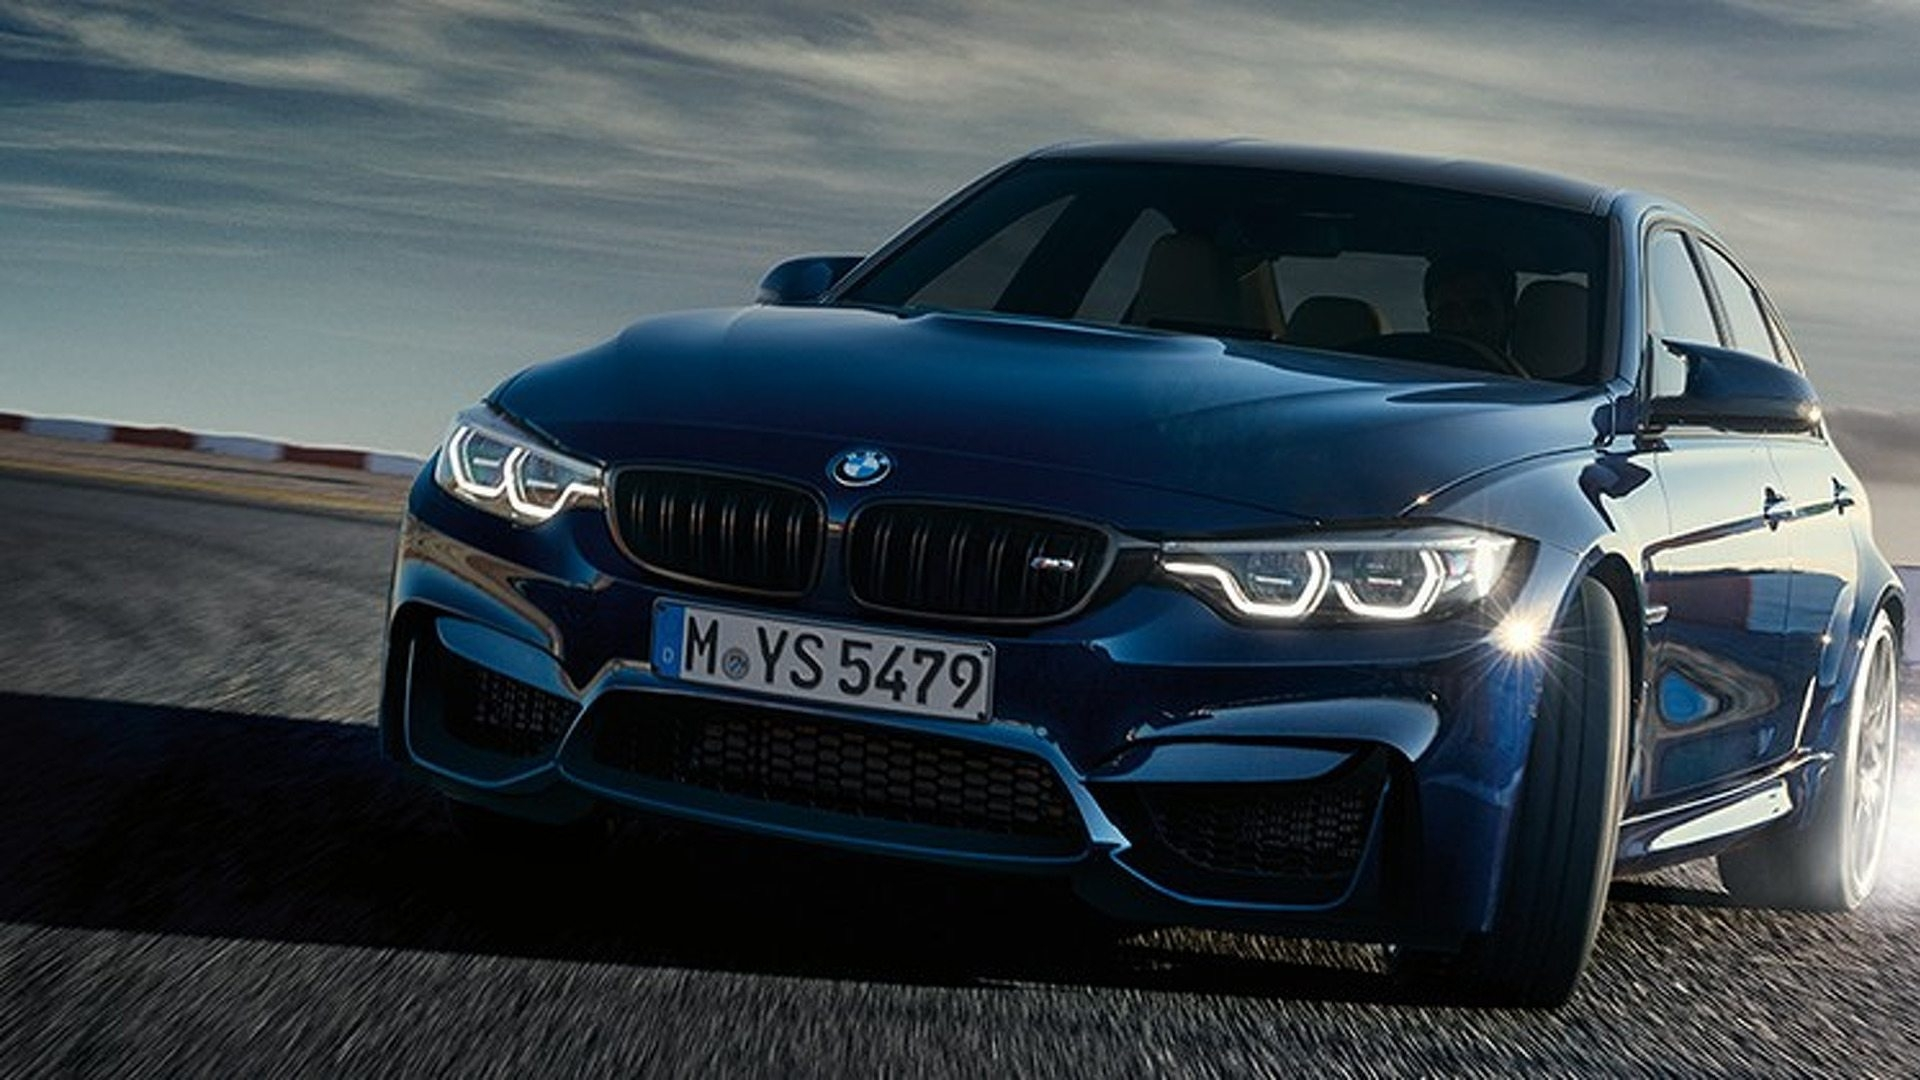 2018 Bmw M3 Concept, Redesign and Review